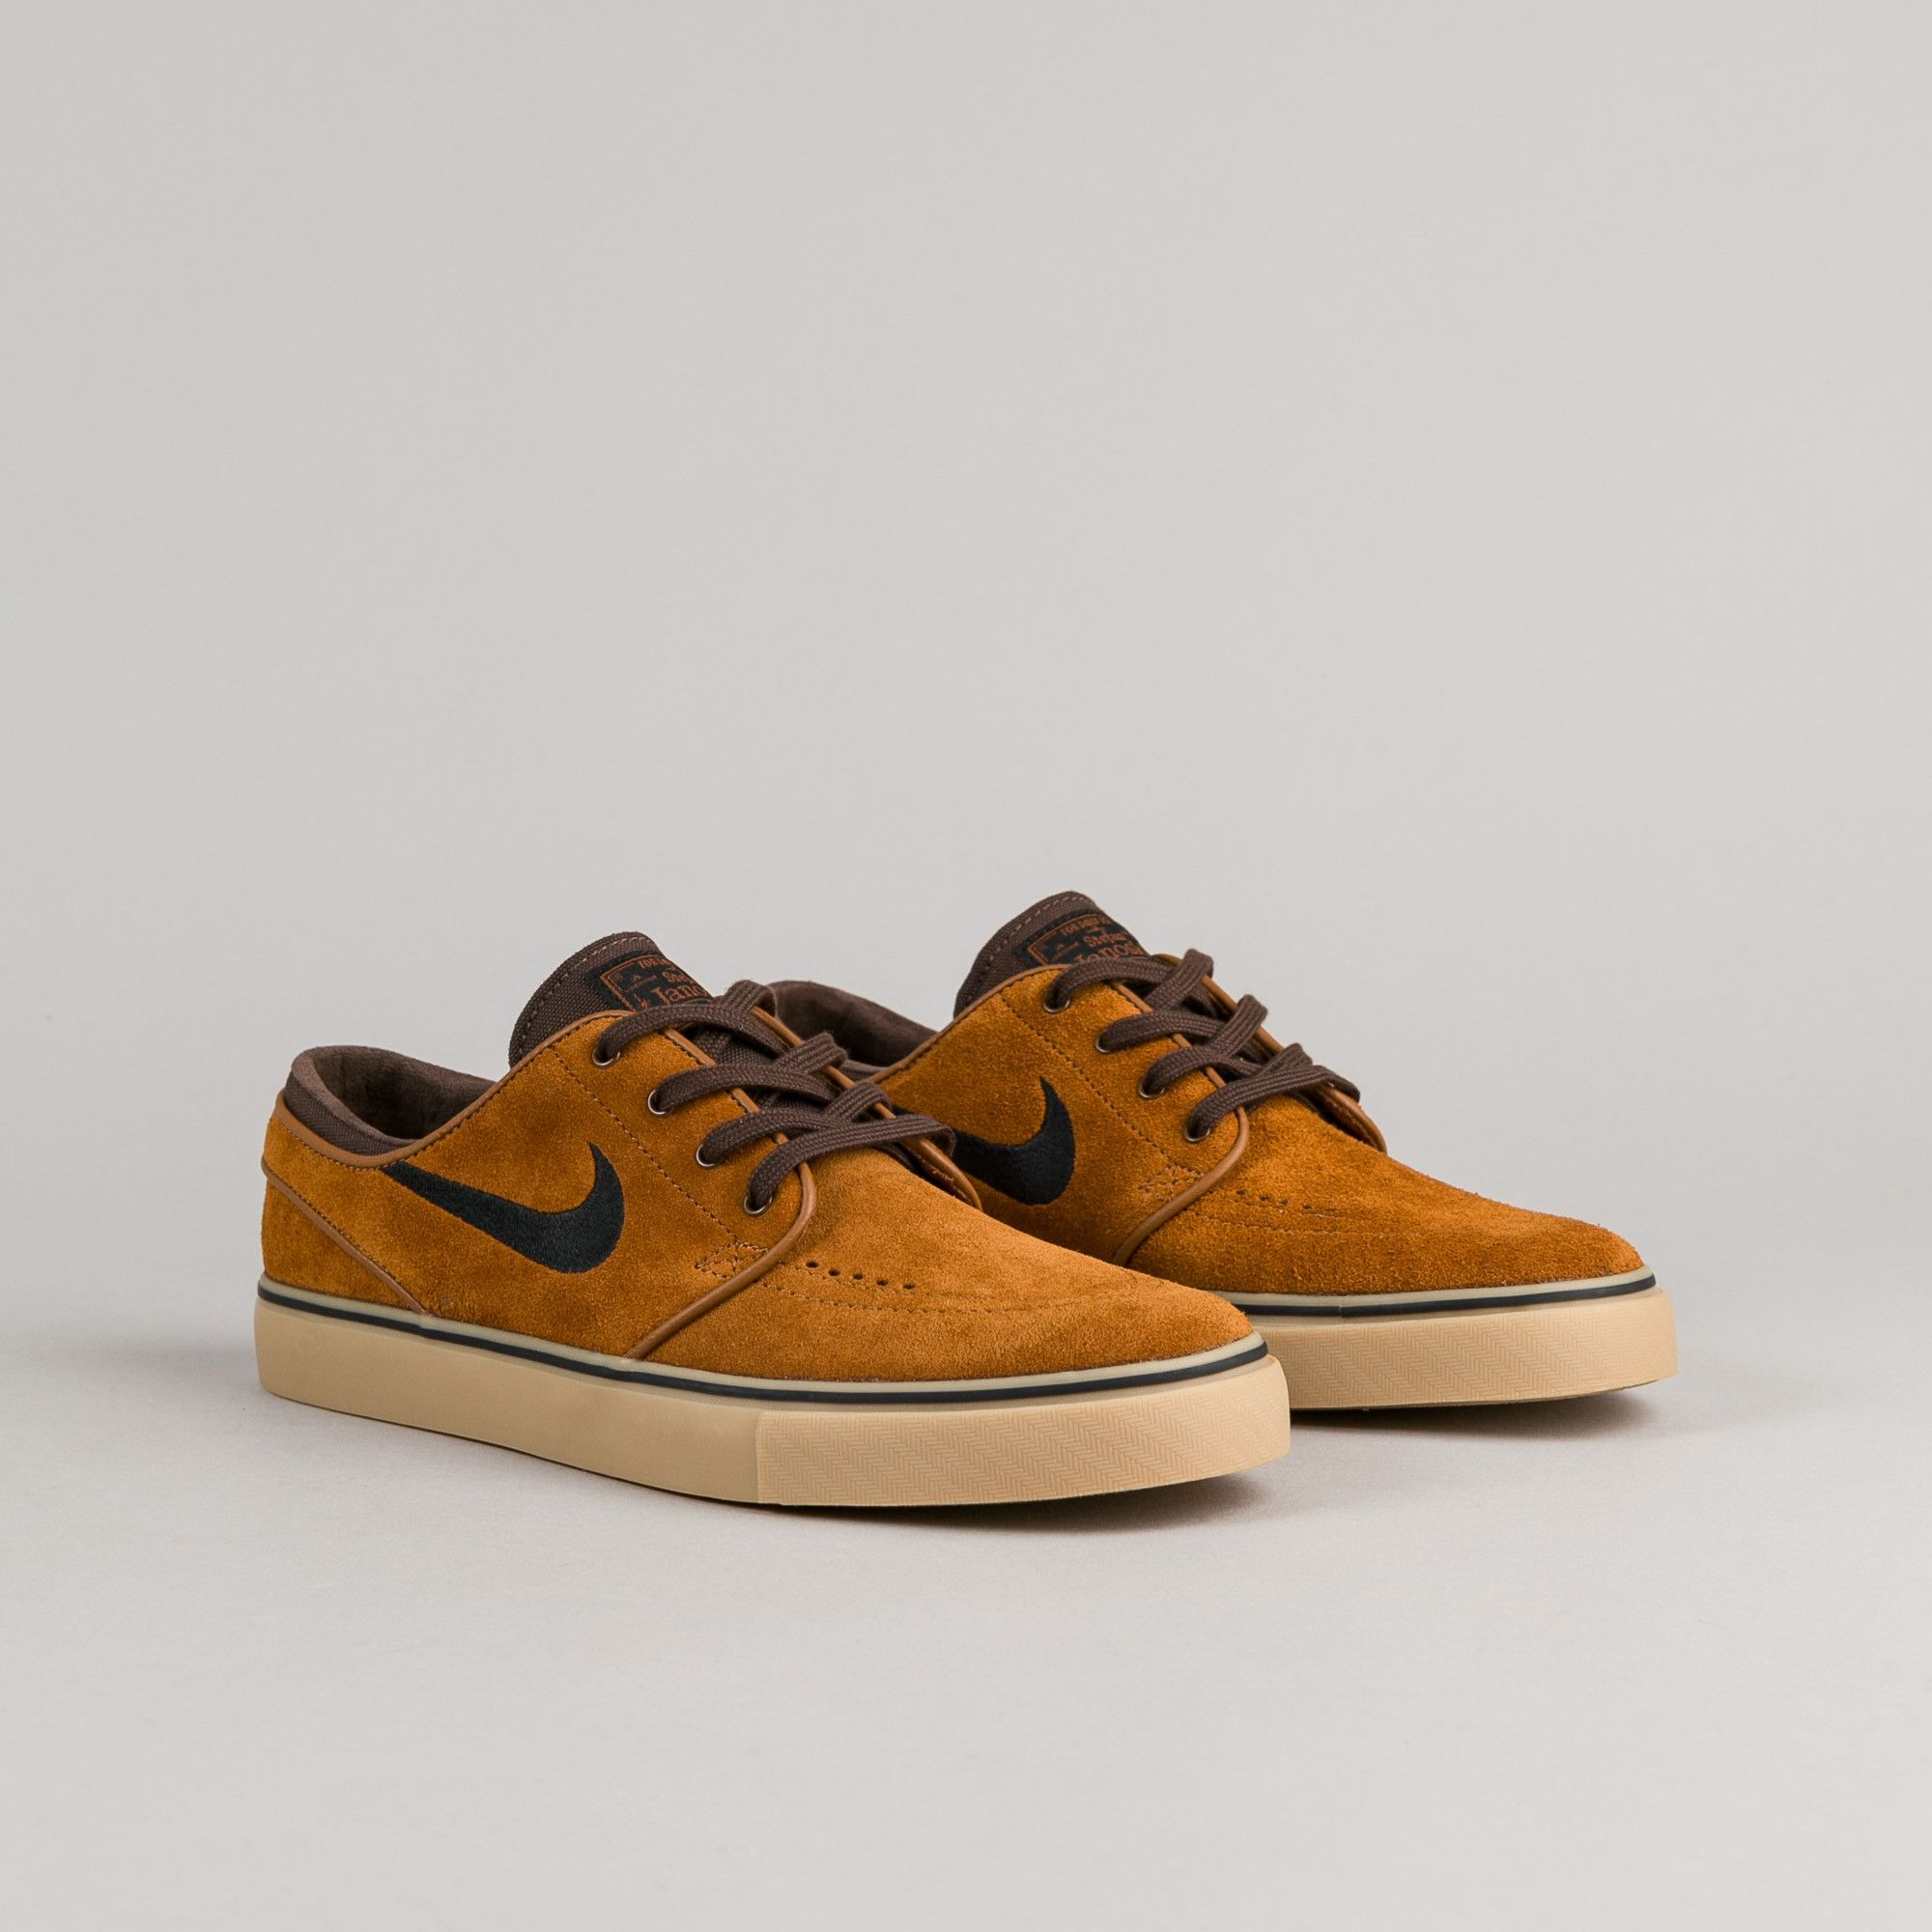 e41f9e23ee97 Nike SB Stefan Janoski Shoes - Hazelnut   Black - Baroque Brown - Gum Light  Brown